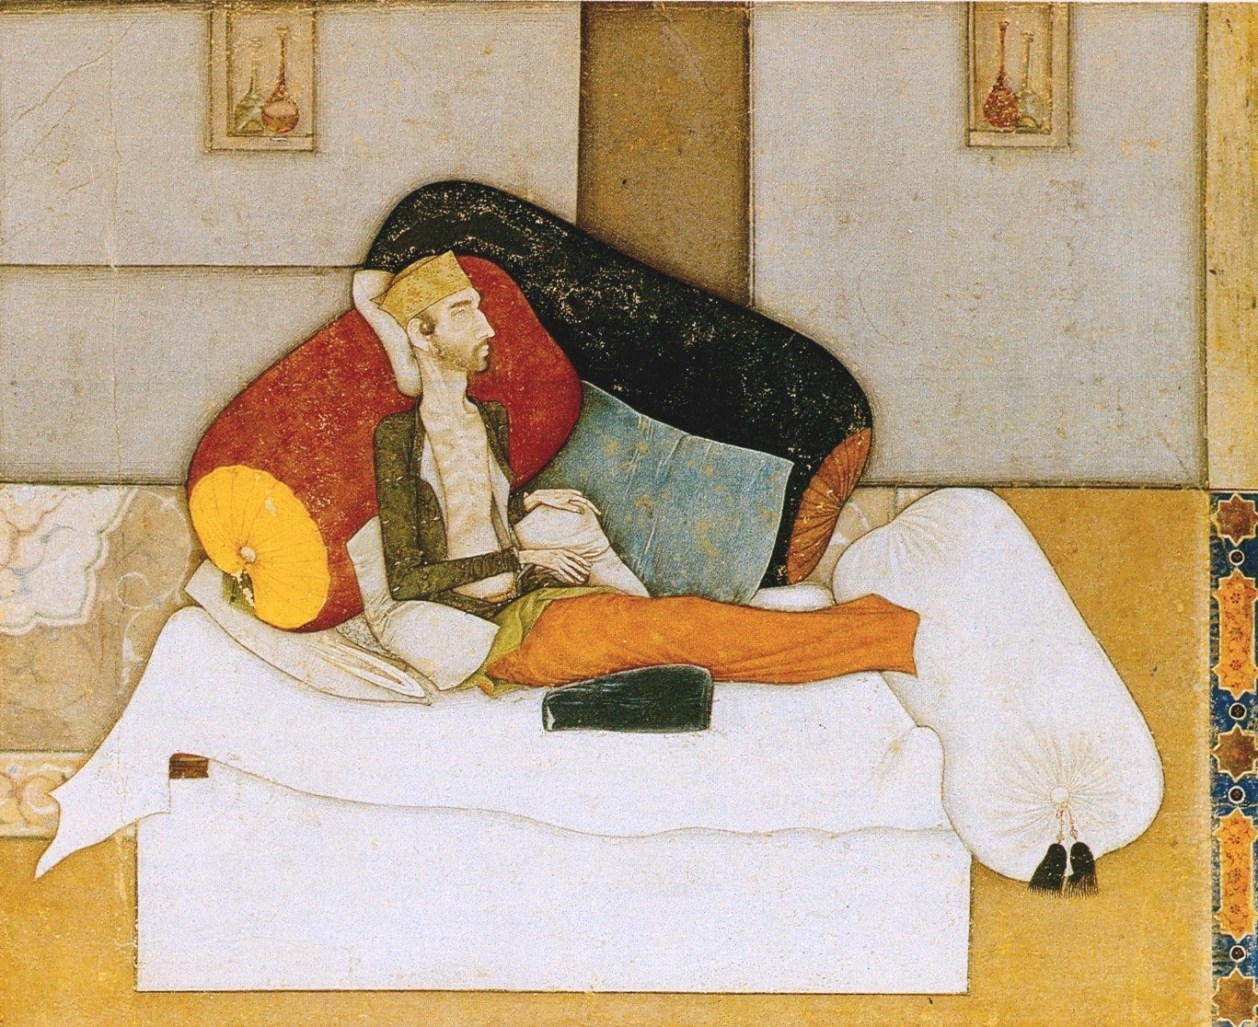 Inayat Khan Dying, ca. 1618, by Balchand. Opaque watercolor on paper, 15 × 12 cm. Bodleian Library, Oxford